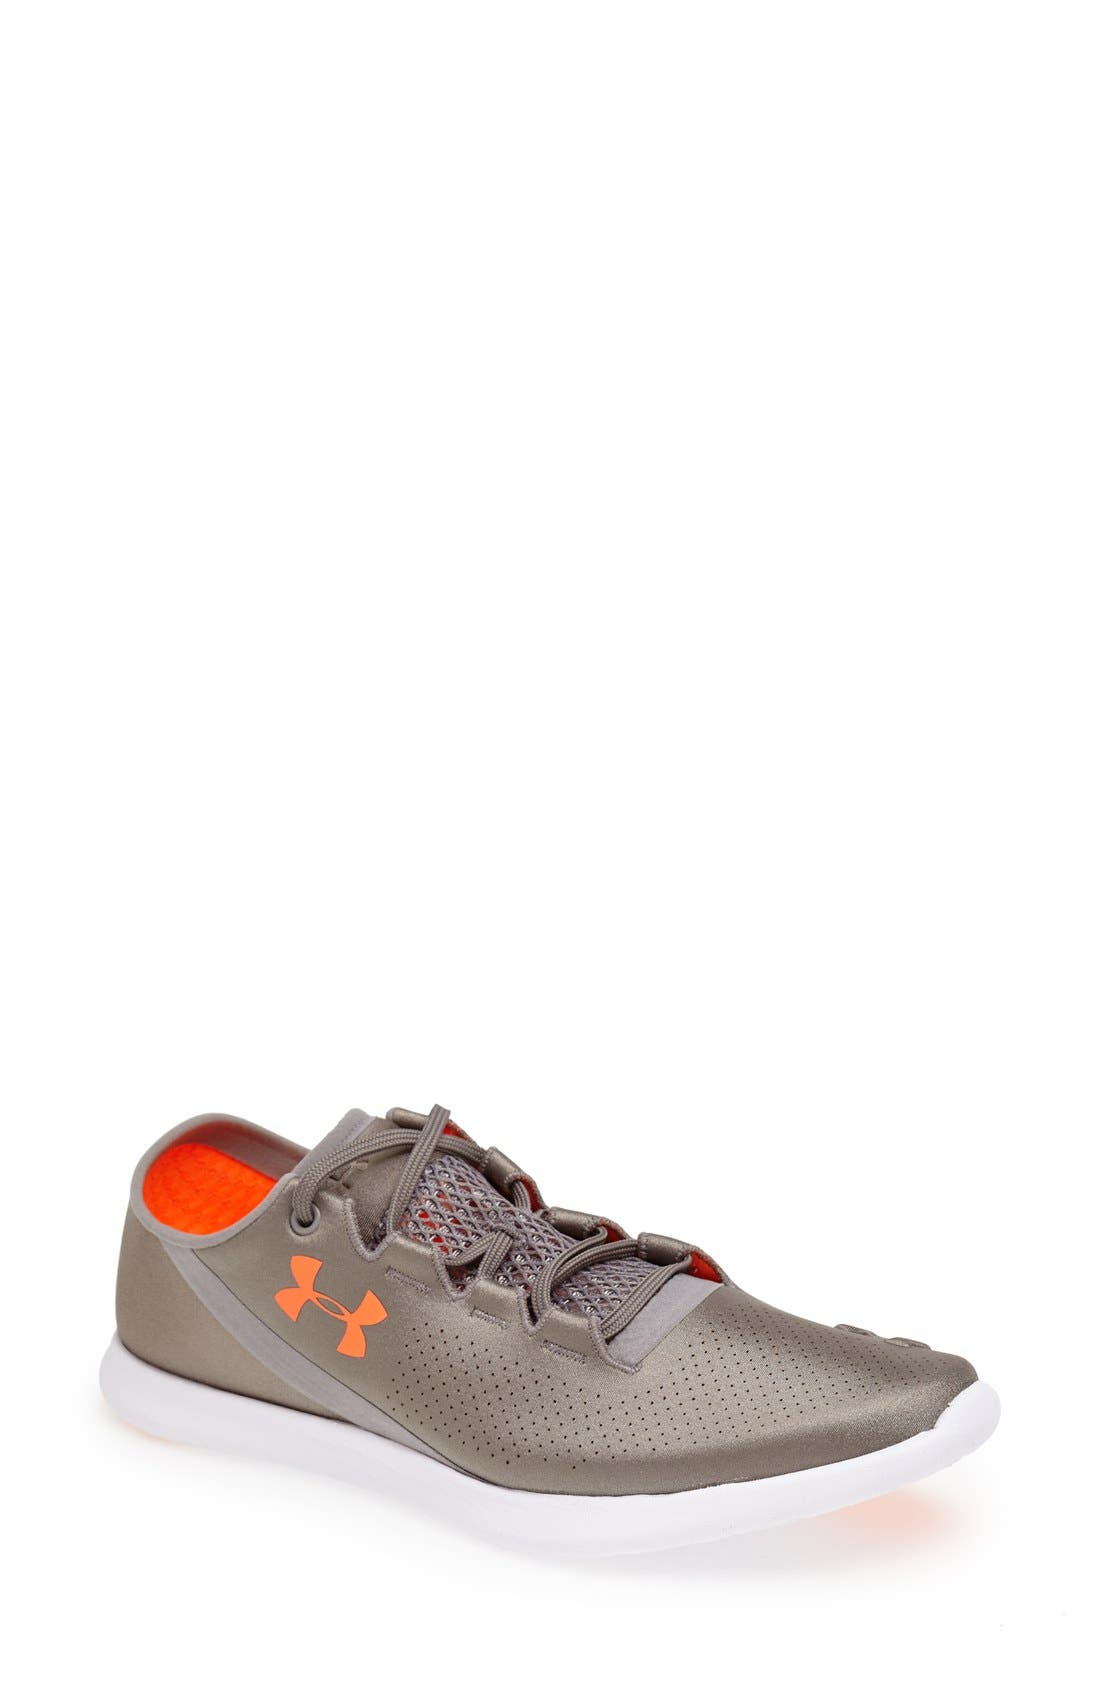 Alternate Image 1 Selected - Under Armour 'Speedform® Studiolux™' Training Shoe (Women)